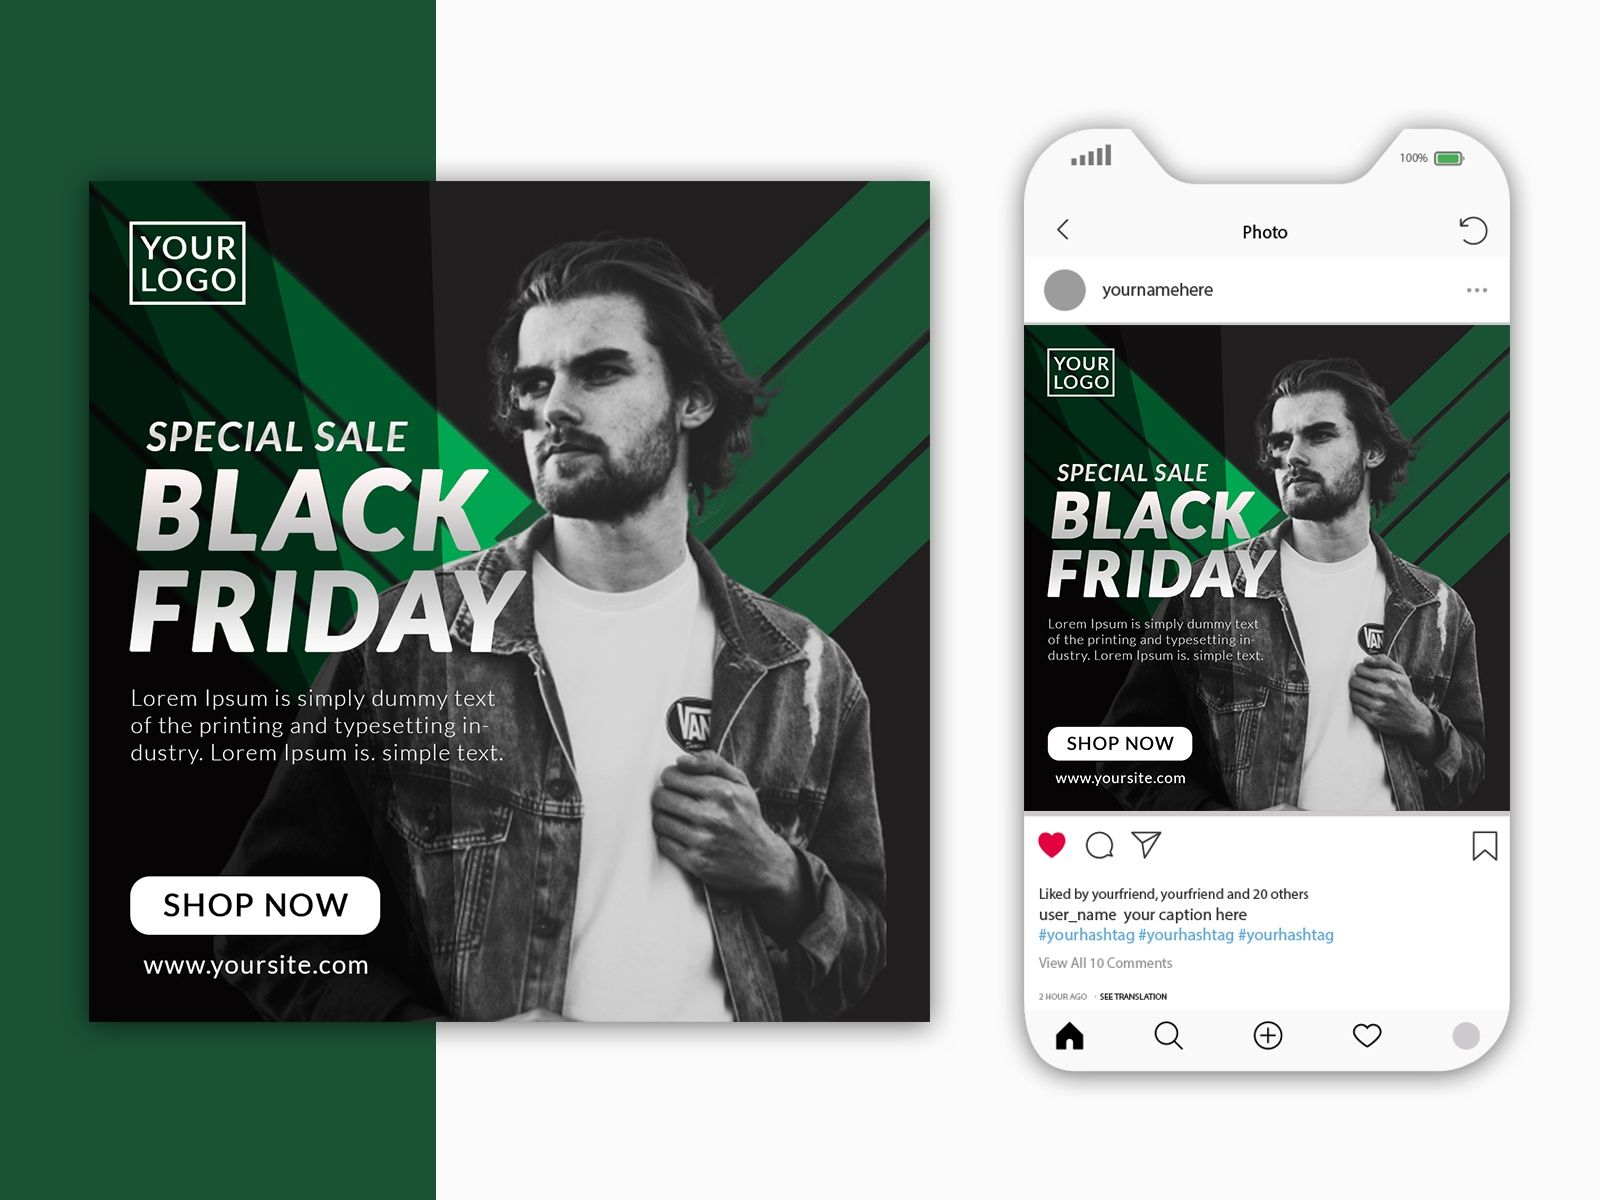 Black Friday Special Sale Ad Design On Social Media In 2020 Black Friday Special Black Friday Black Friday Shopping Quotes